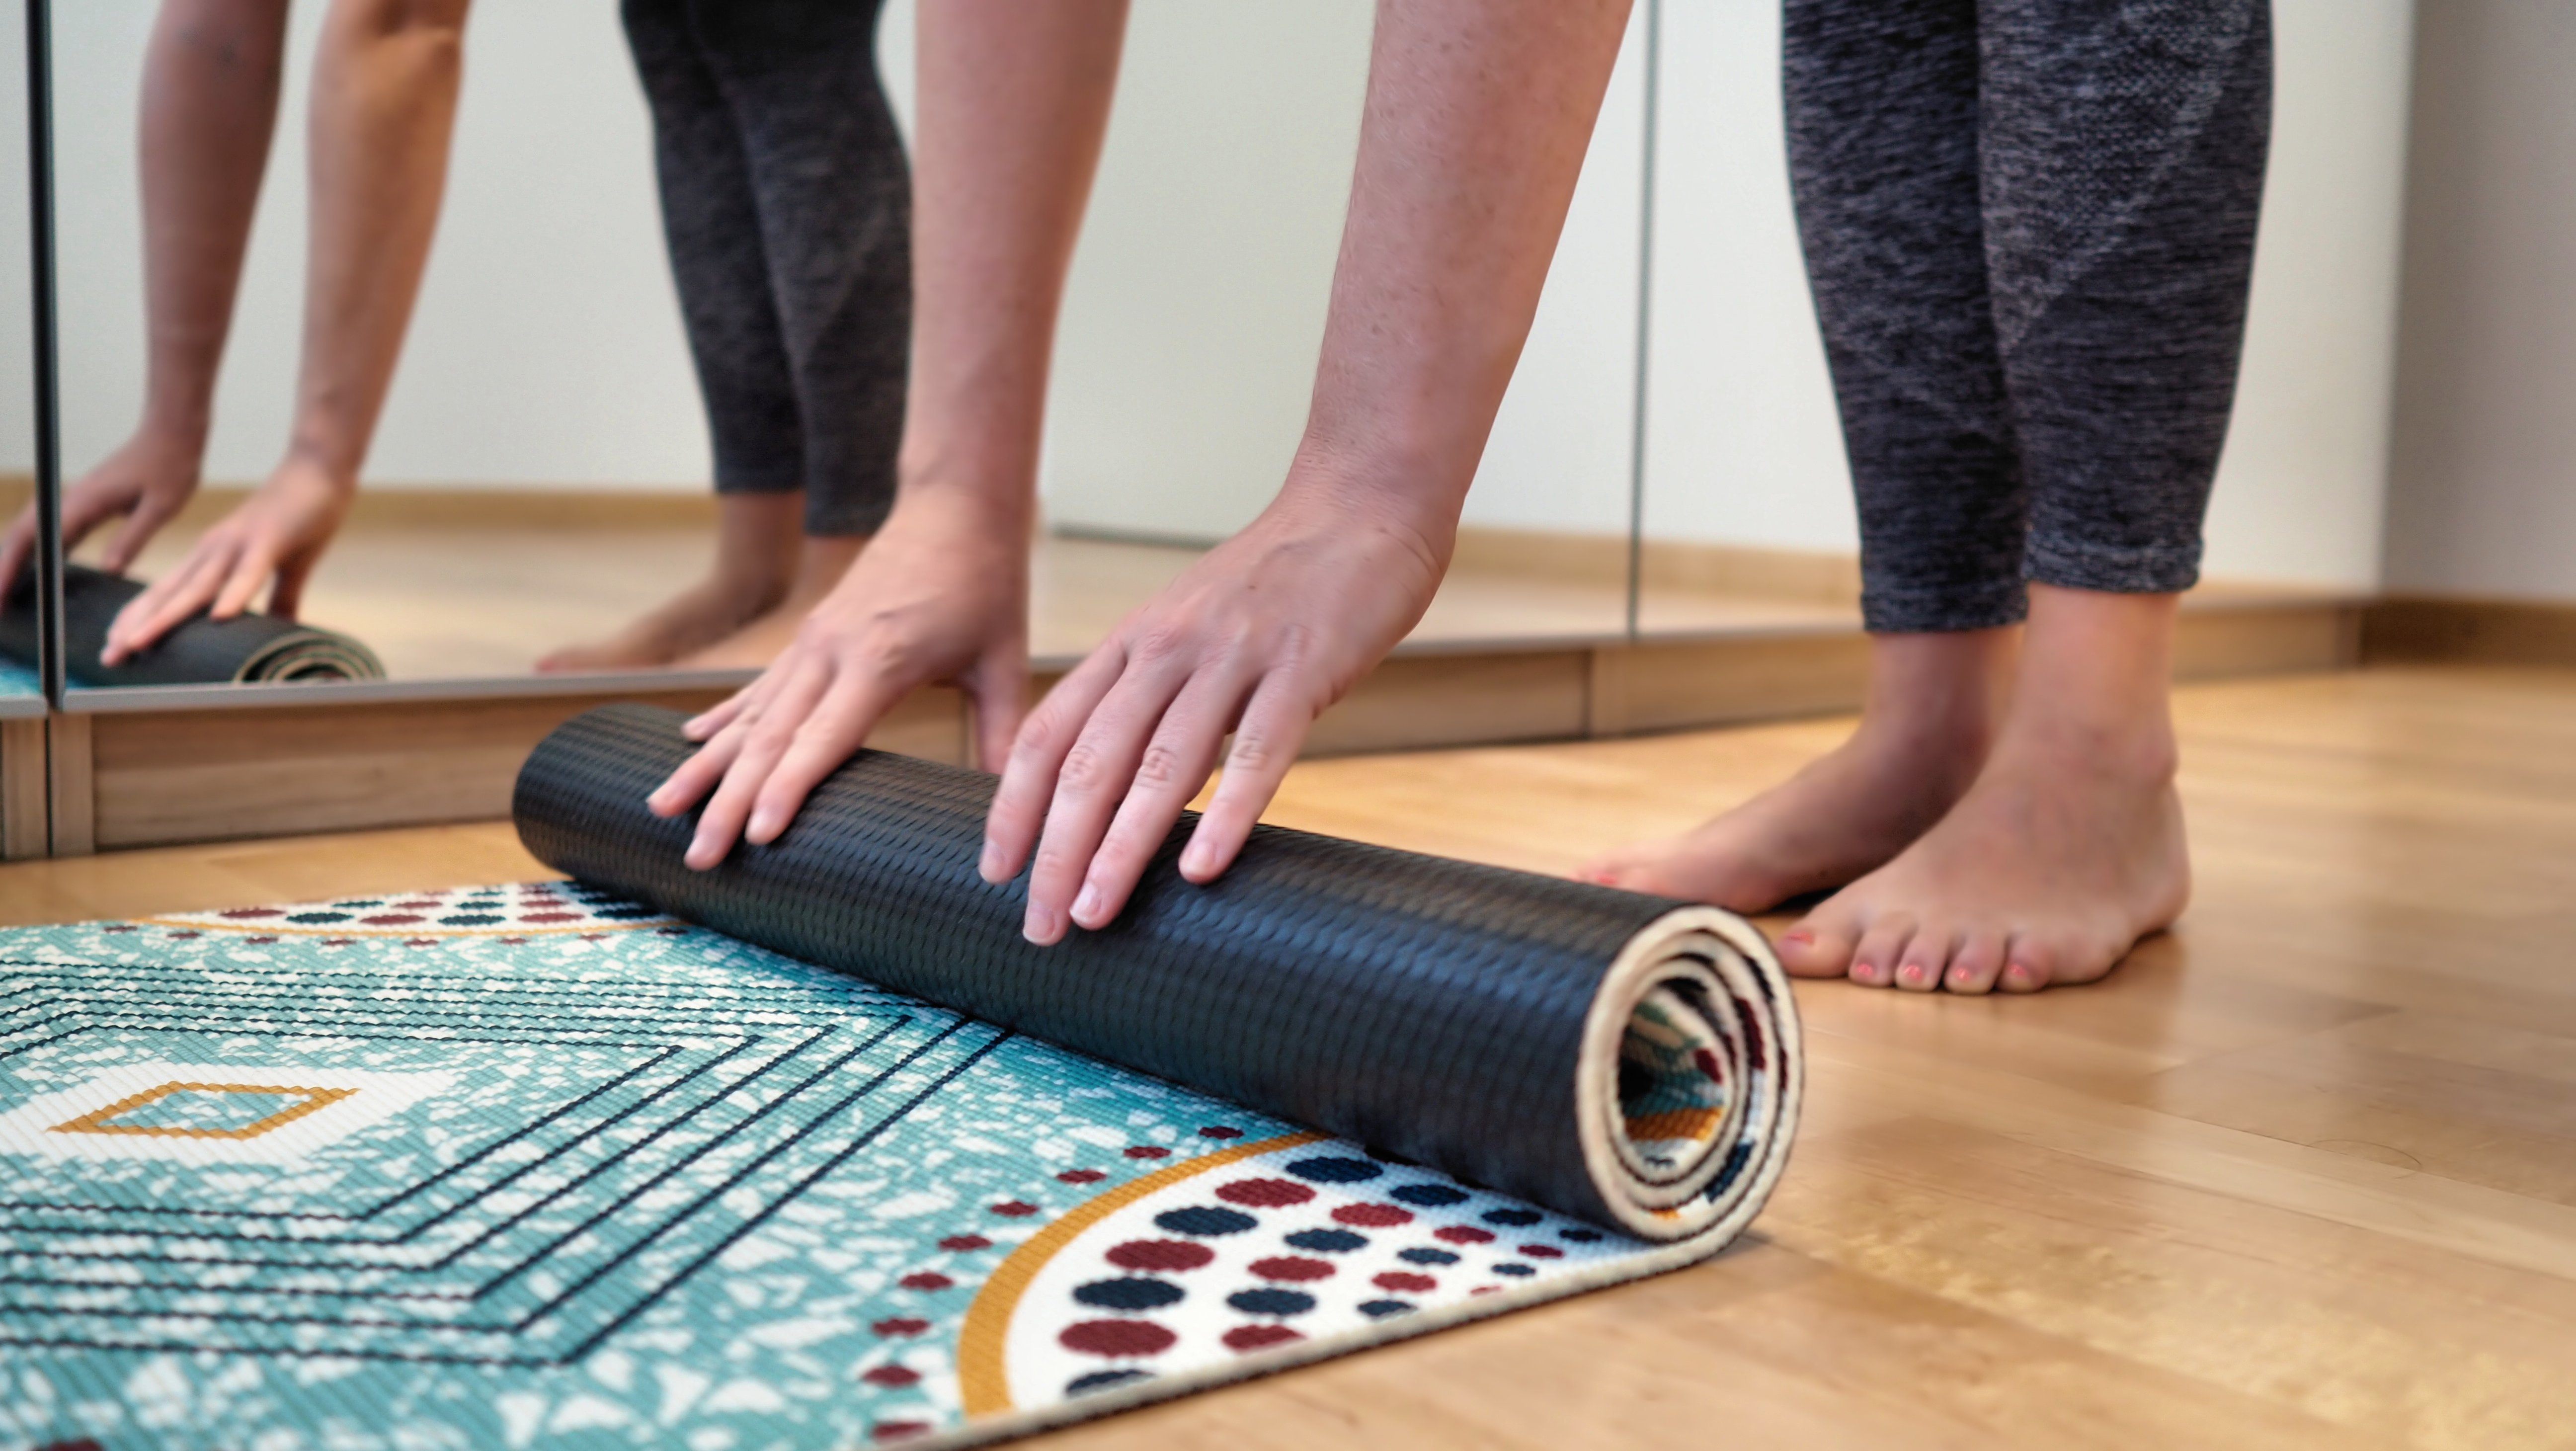 YogHappiness Yoga Français English Contact Zurich Zürich Suisse